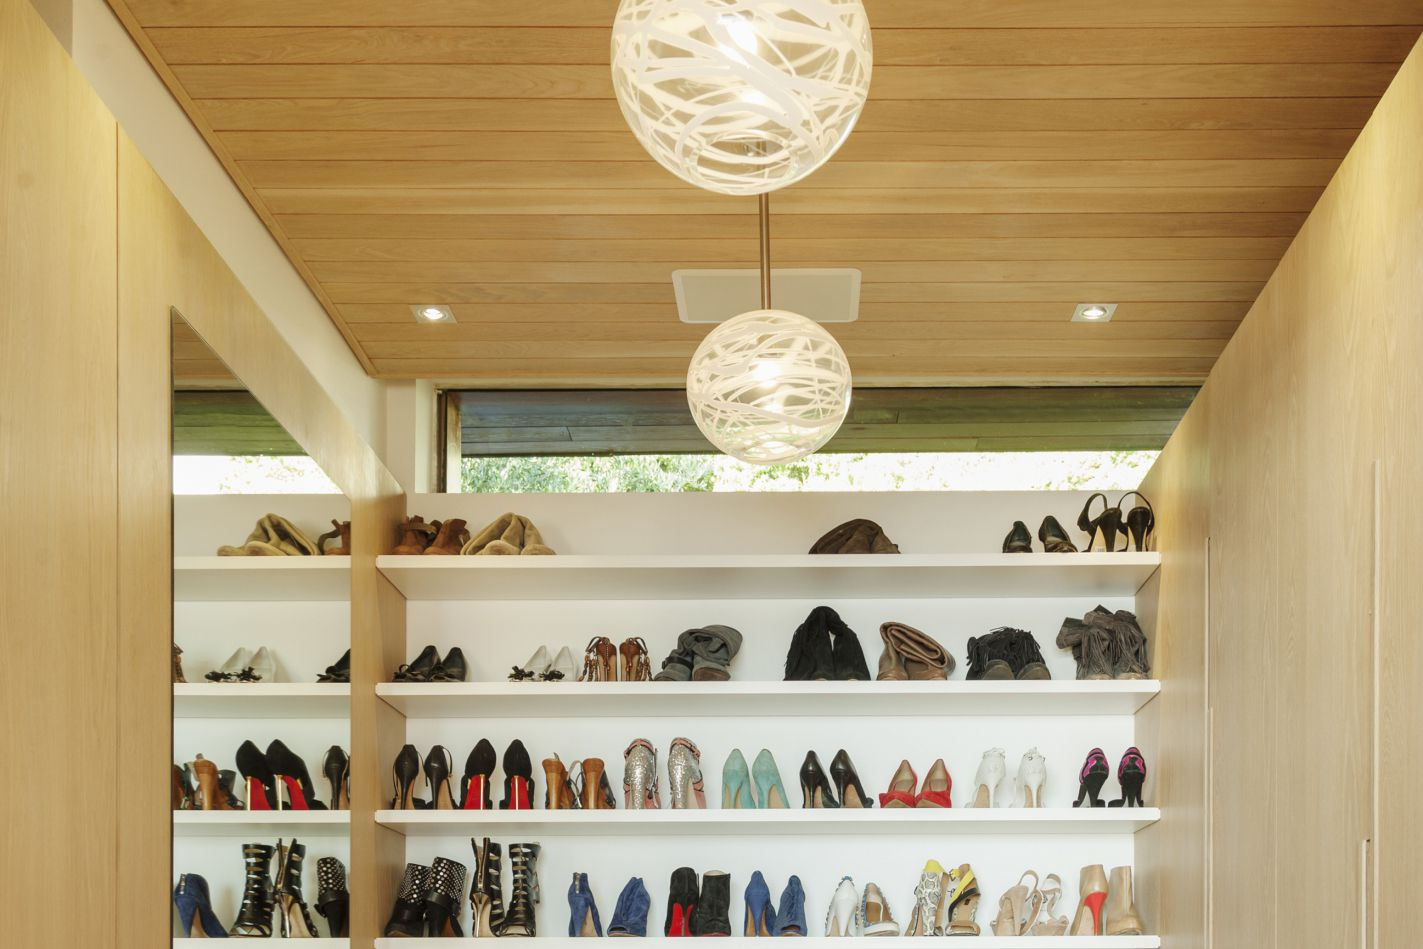 Clothes closet lighting dos and donts what you need to know before you buy closet lighting arubaitofo Gallery